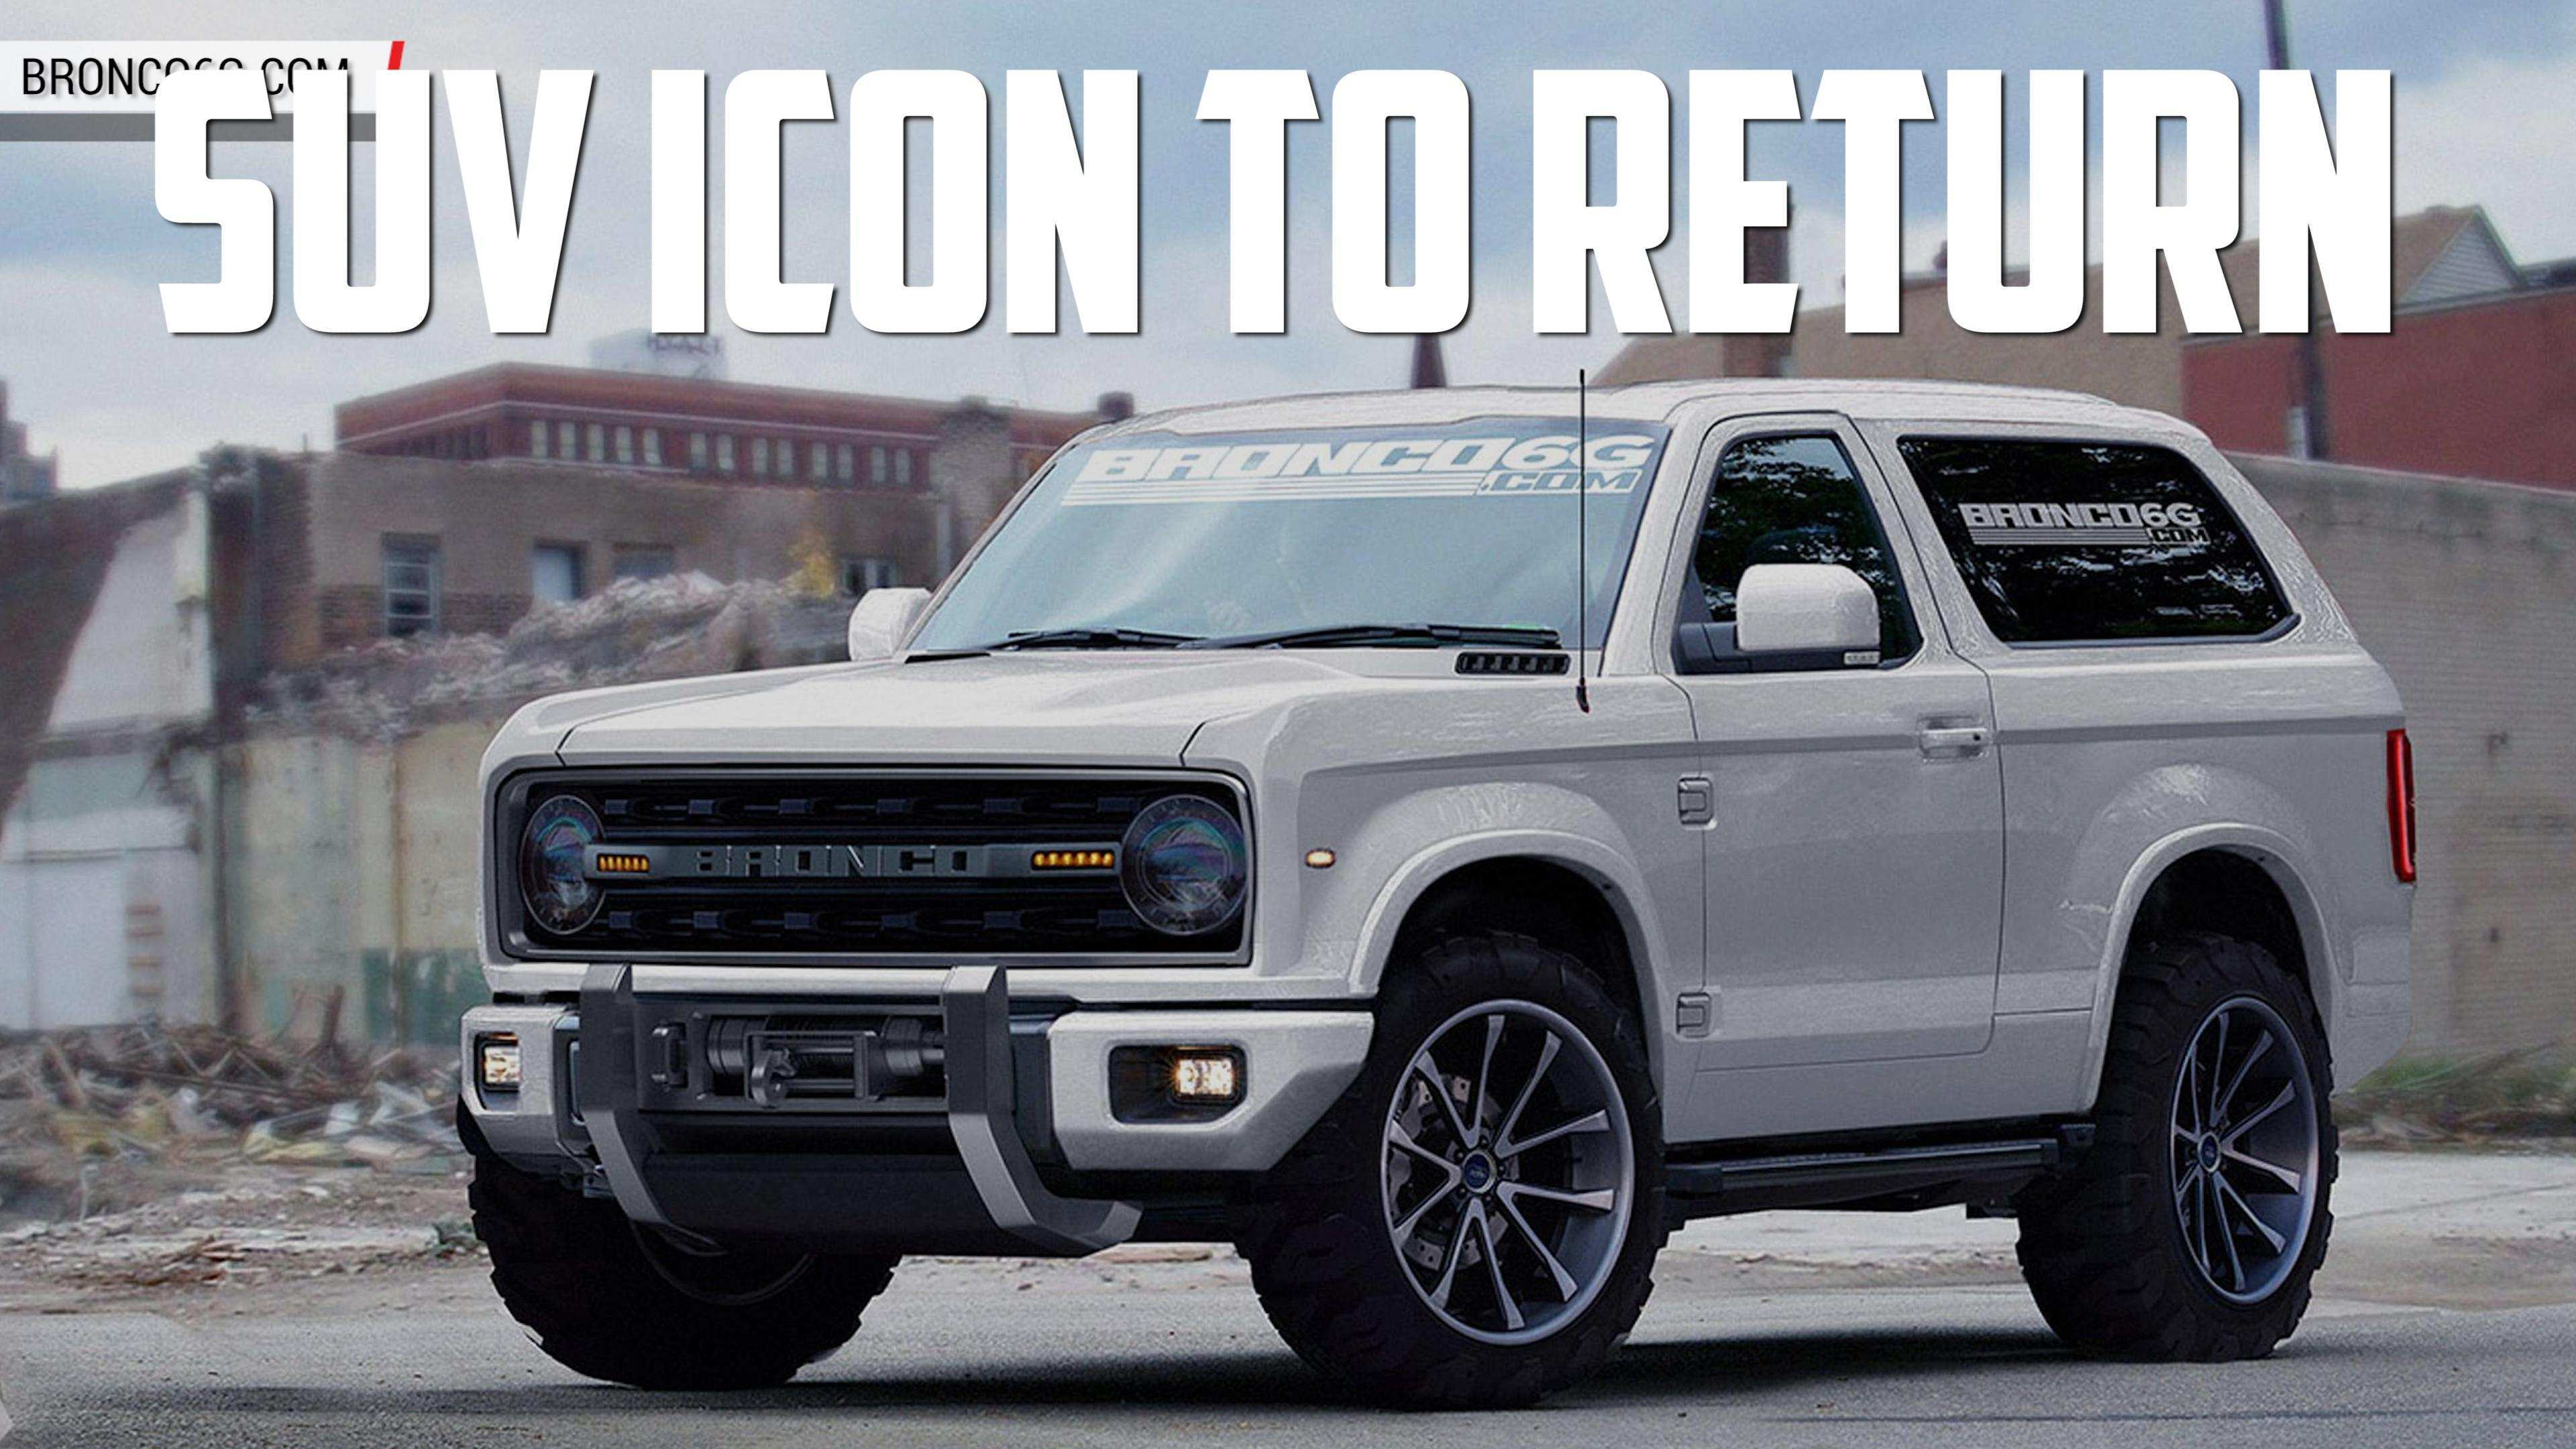 34 New Ford Bronco 2020 Release Date Pictures